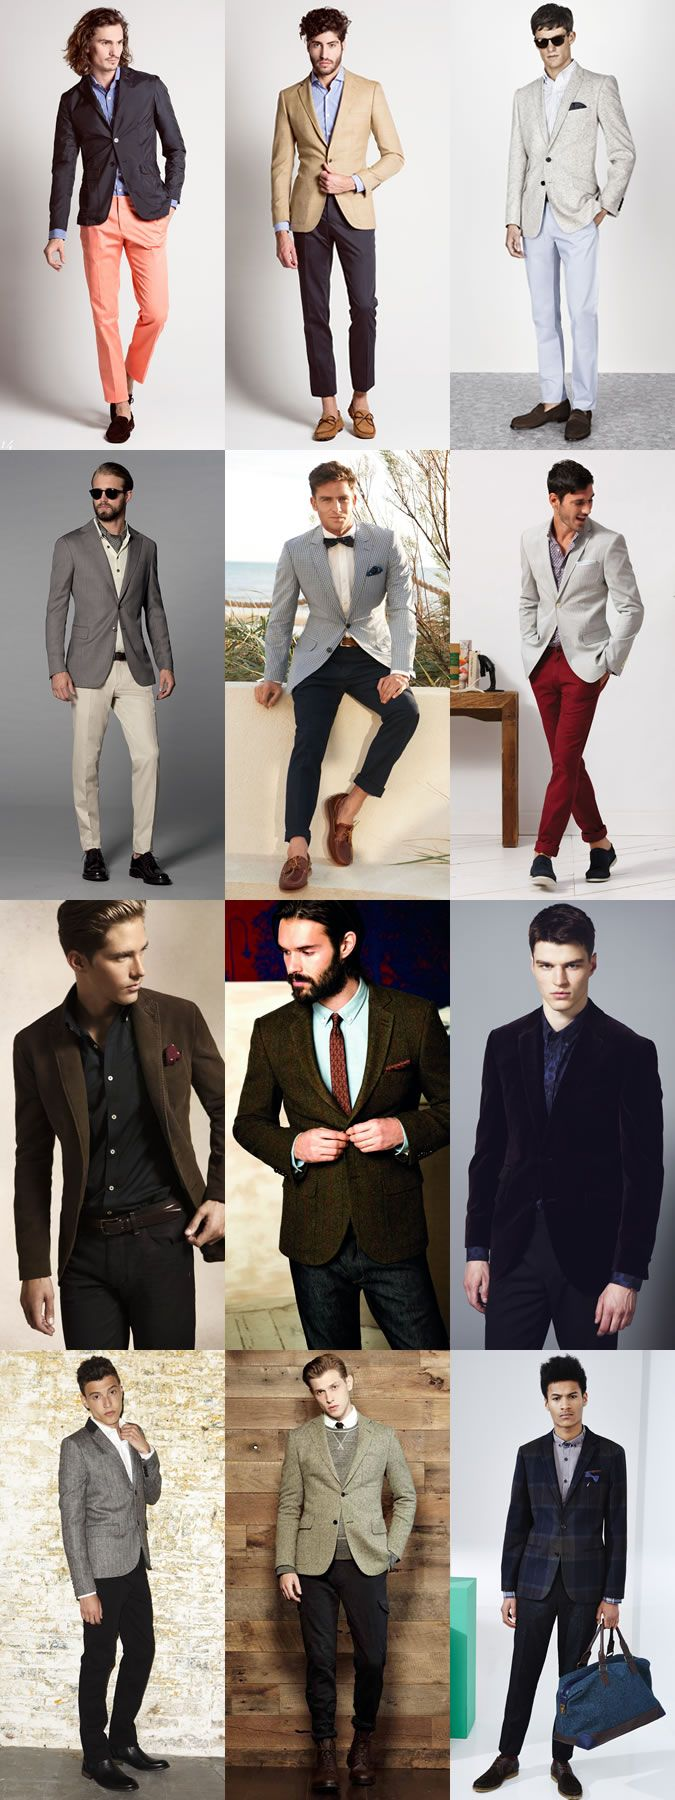 Make a Stylish Appearance with Right Outfit at the Party